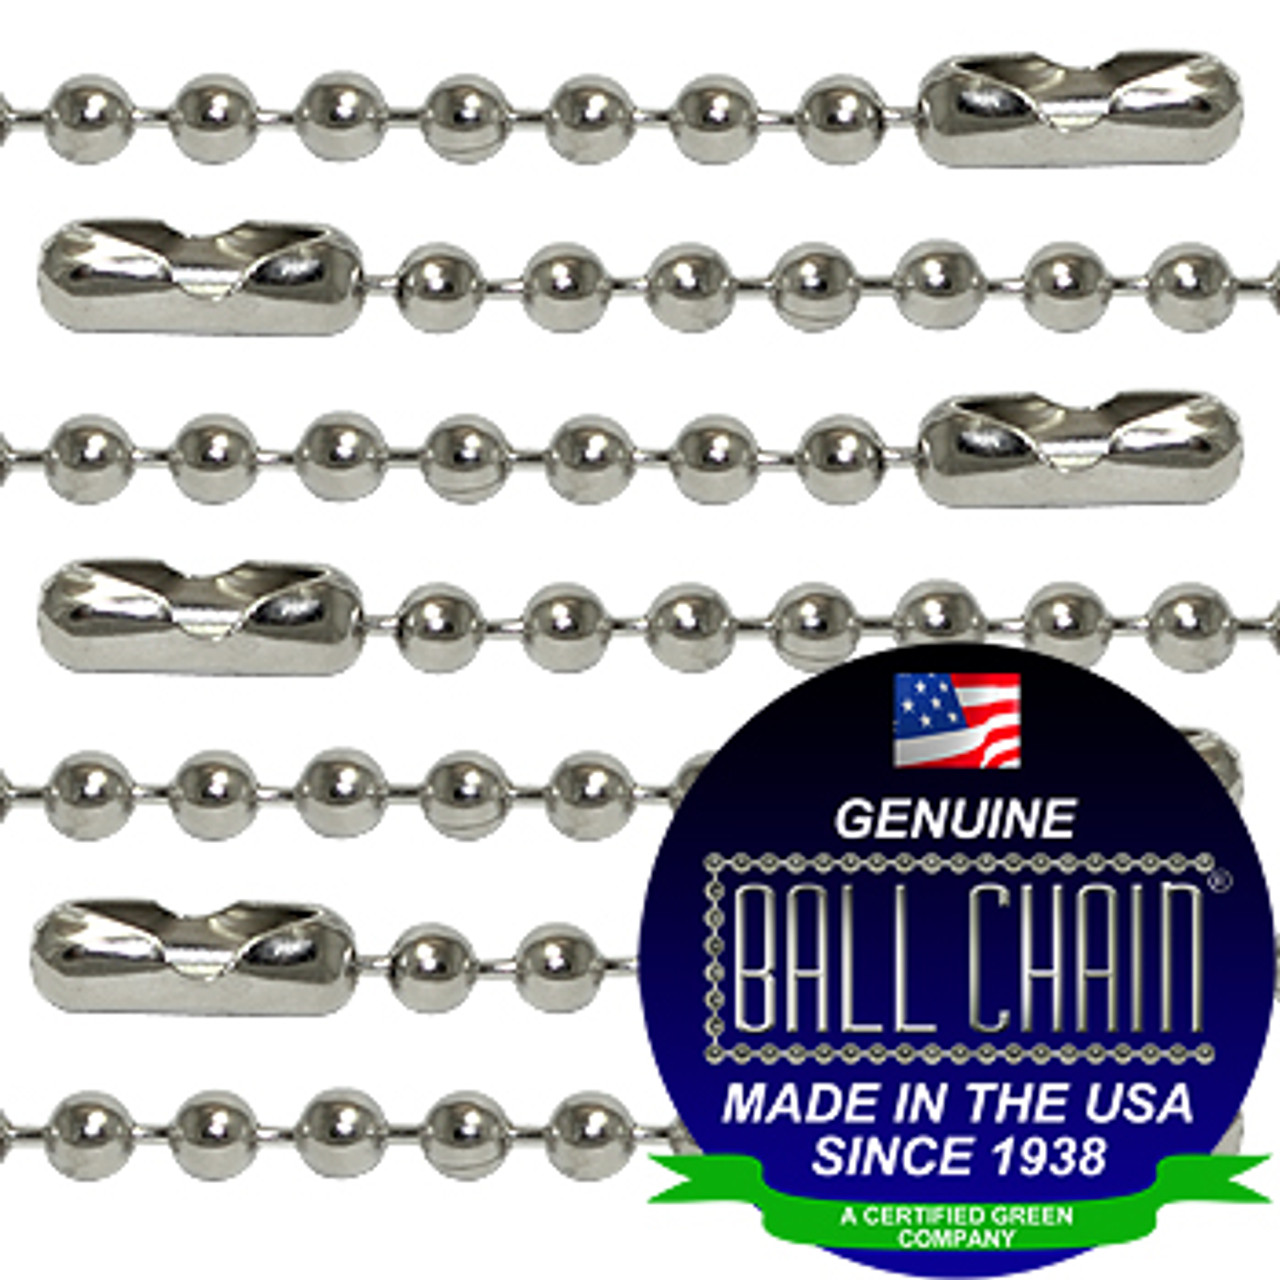 #2 Nickel Plated Brass Ball Chains with Connector - 30 Inch Length